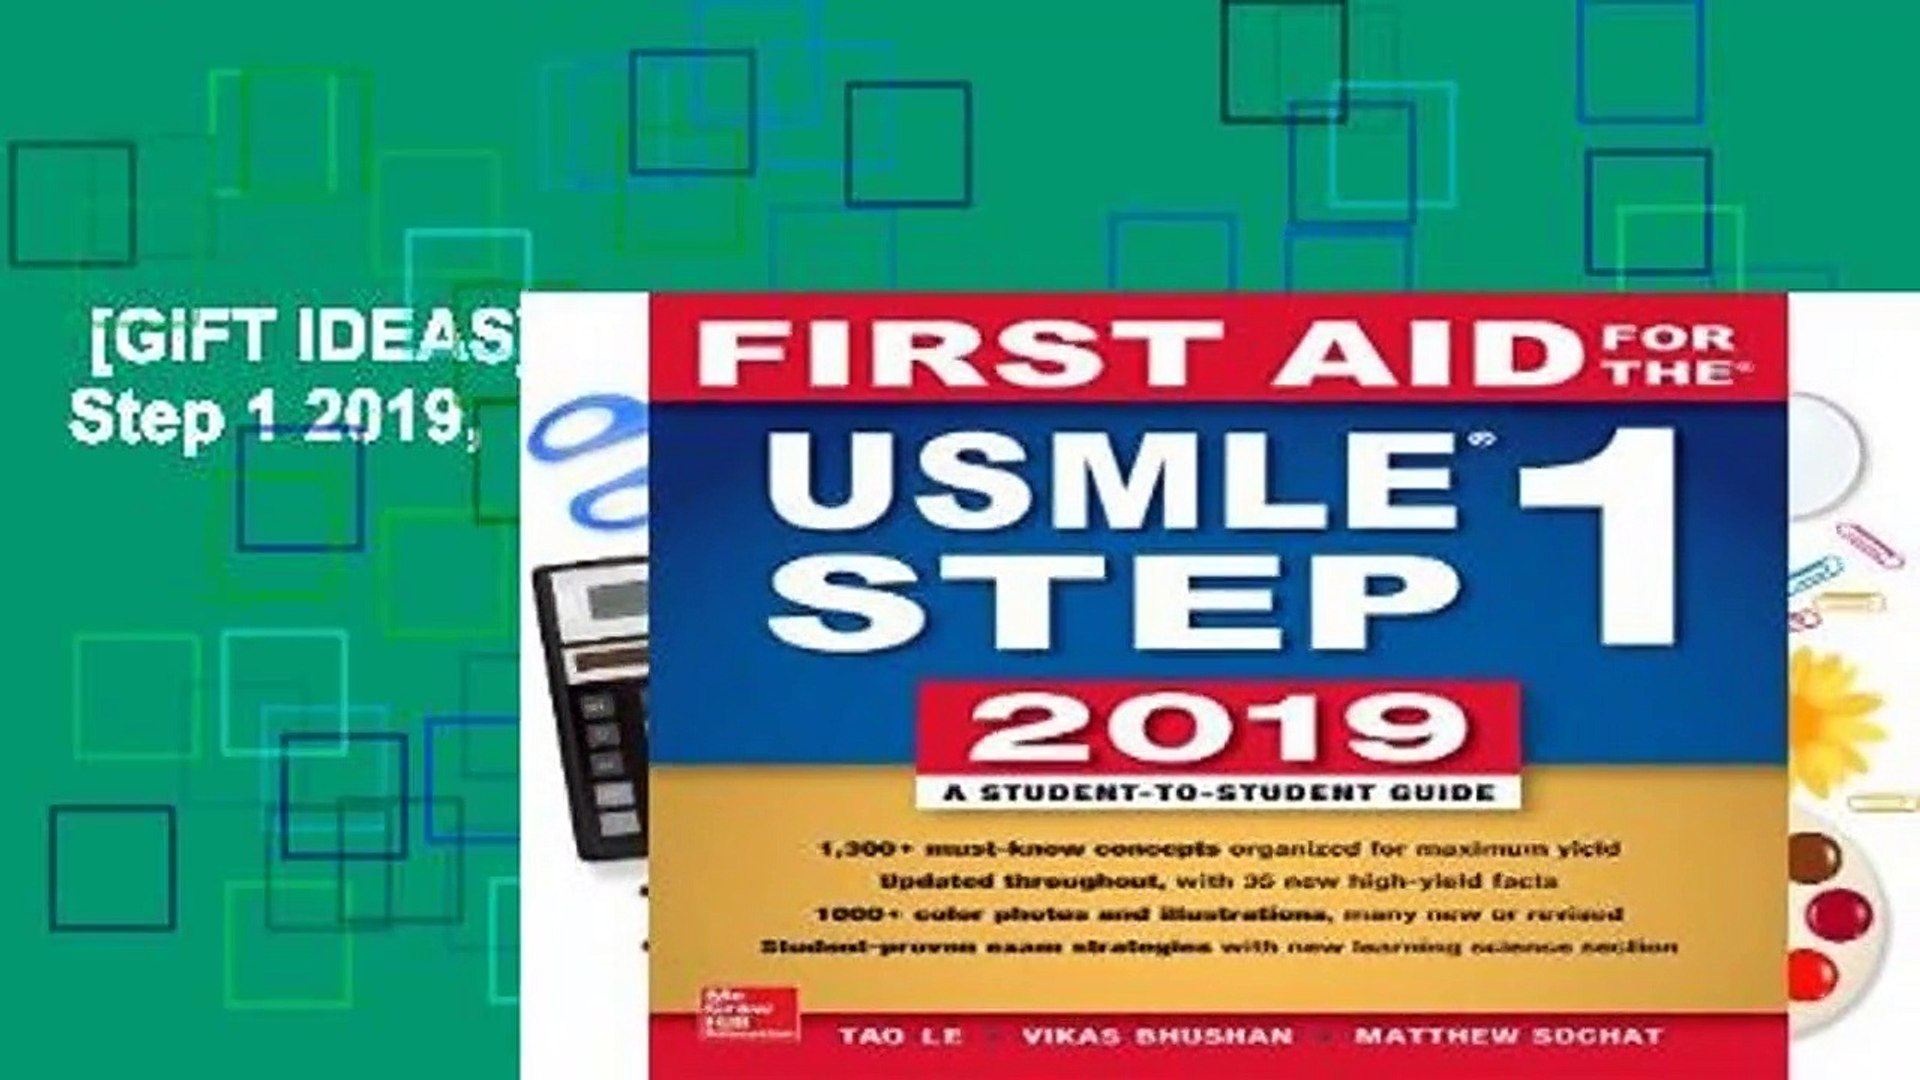 [GIFT IDEAS] First Aid for the USMLE Step 1 2019, Twenty-ninth edition